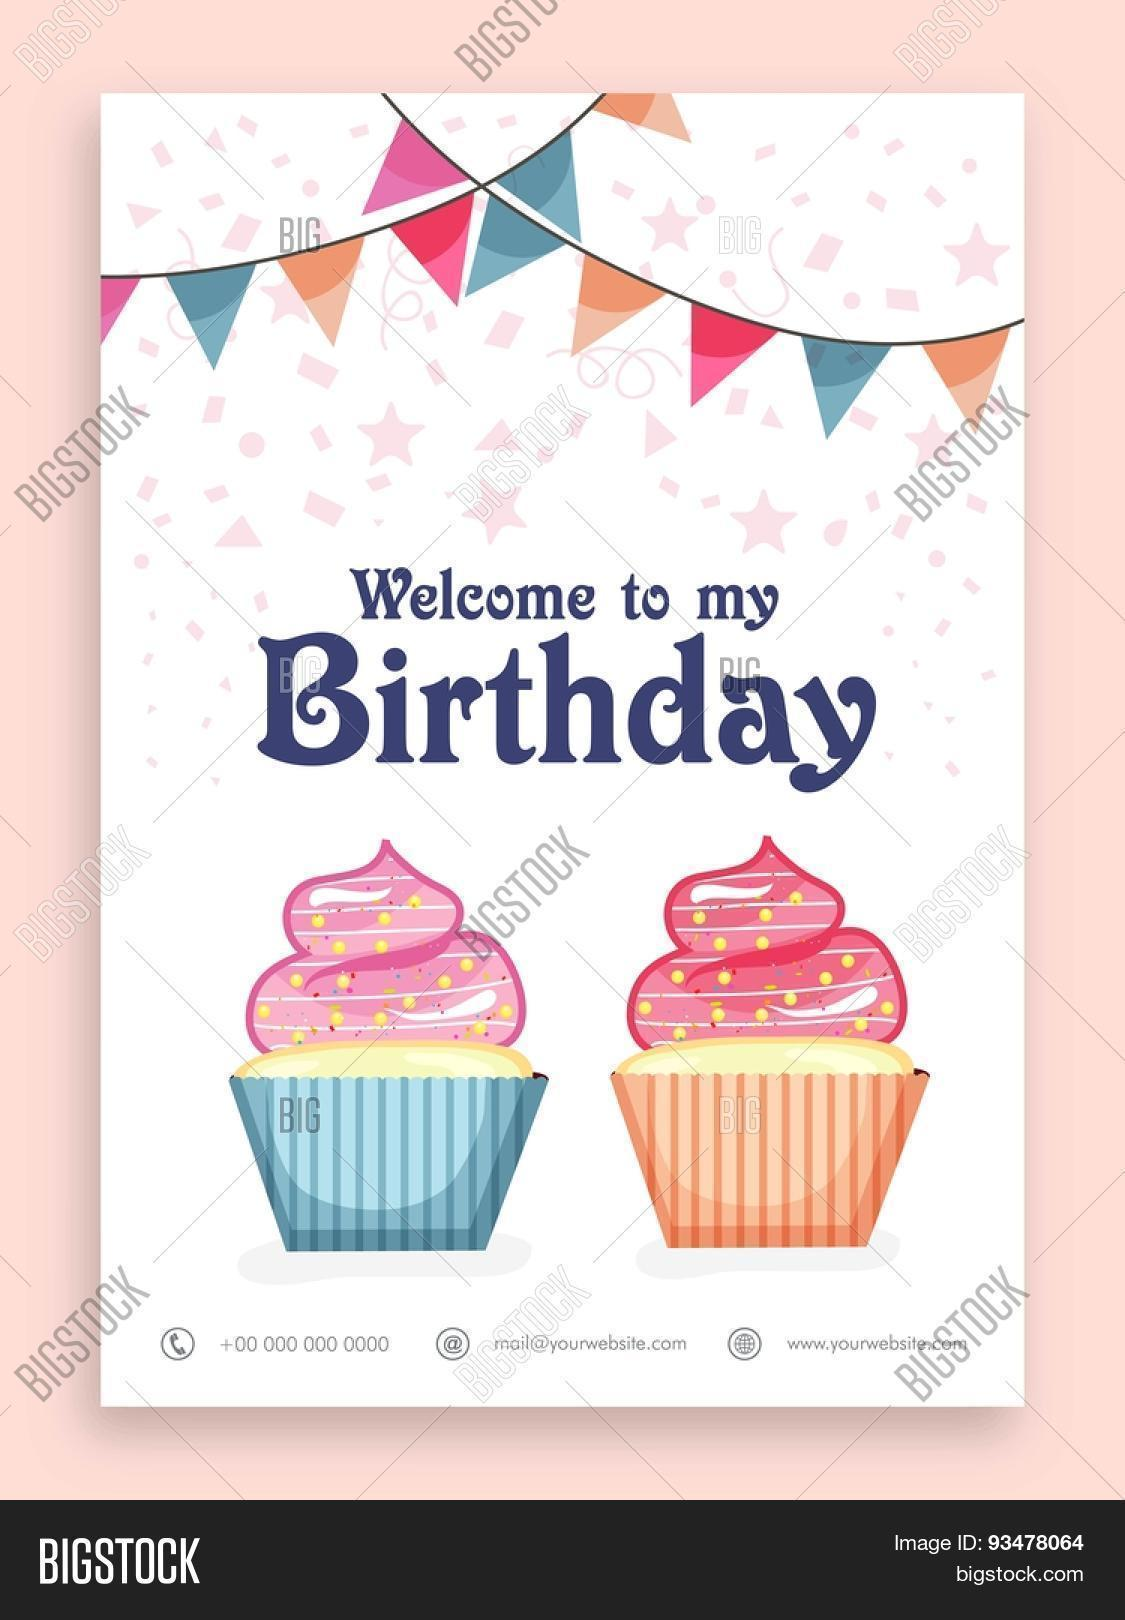 Birthday Party Celebration Welcome Vector Photo – Welcome Party Invitation Cards